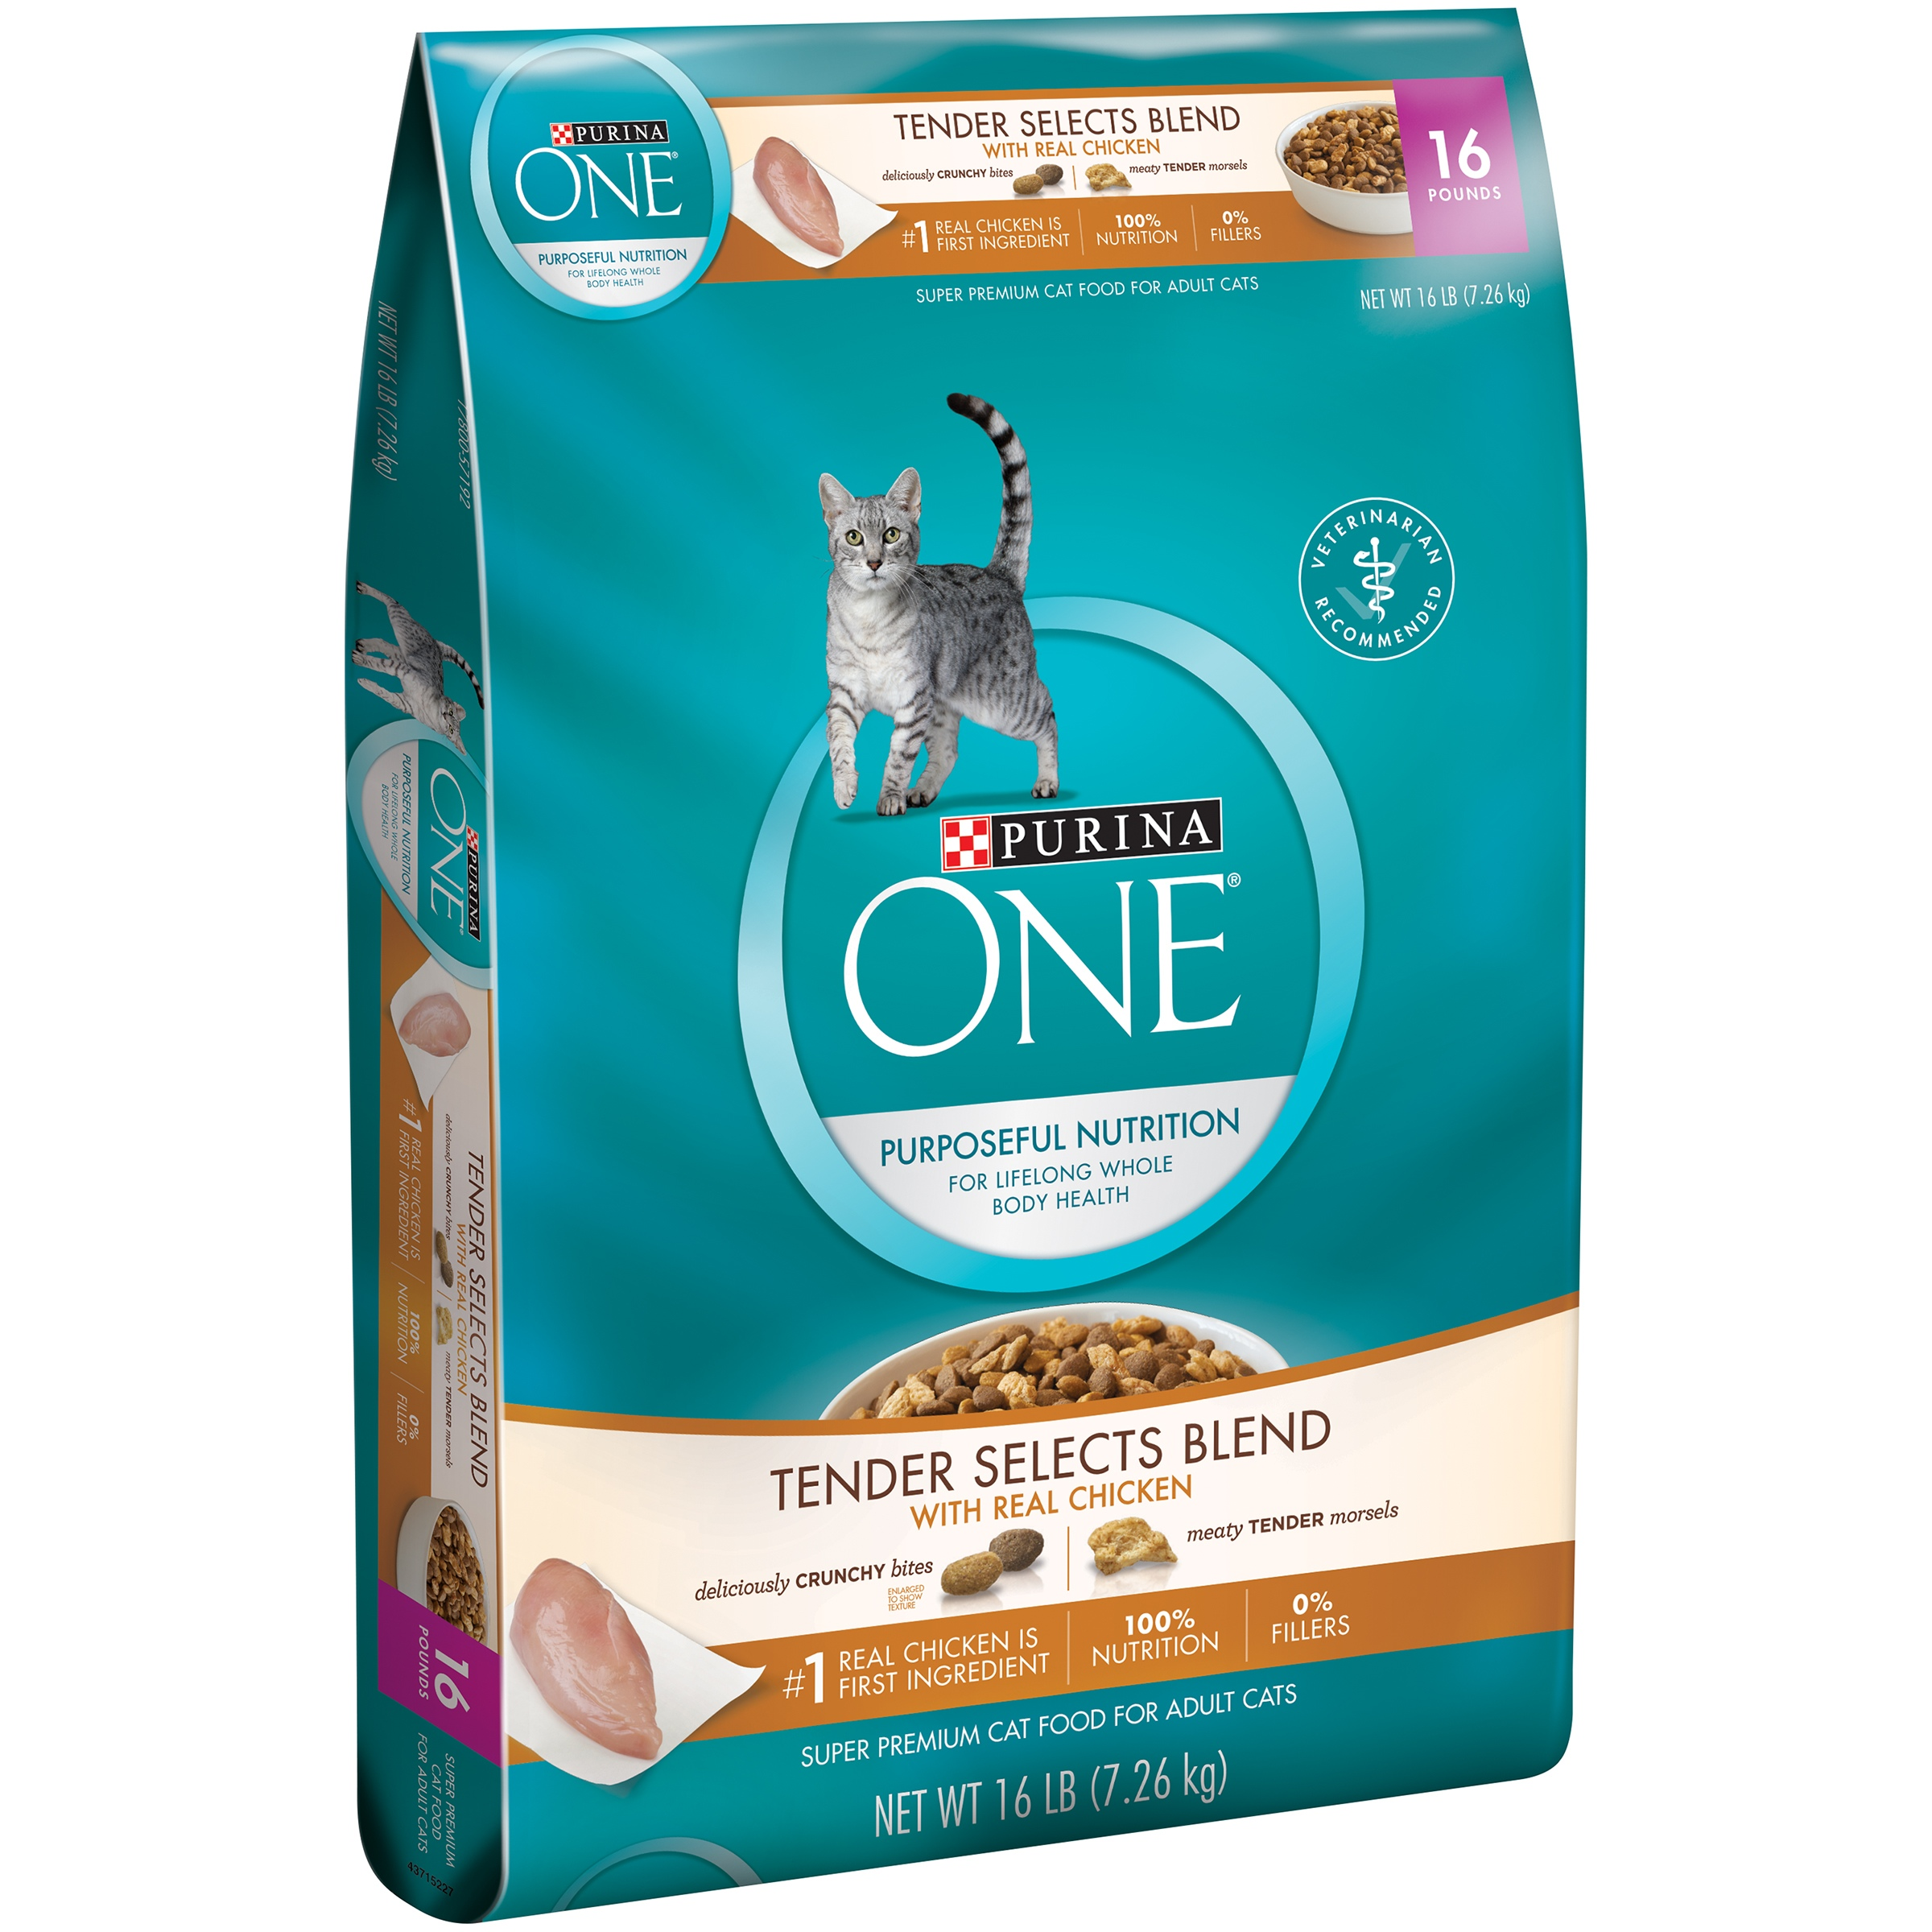 Purina ONE Tender Selects Blend with Real Chicken Cat Food 16 lb. Bag